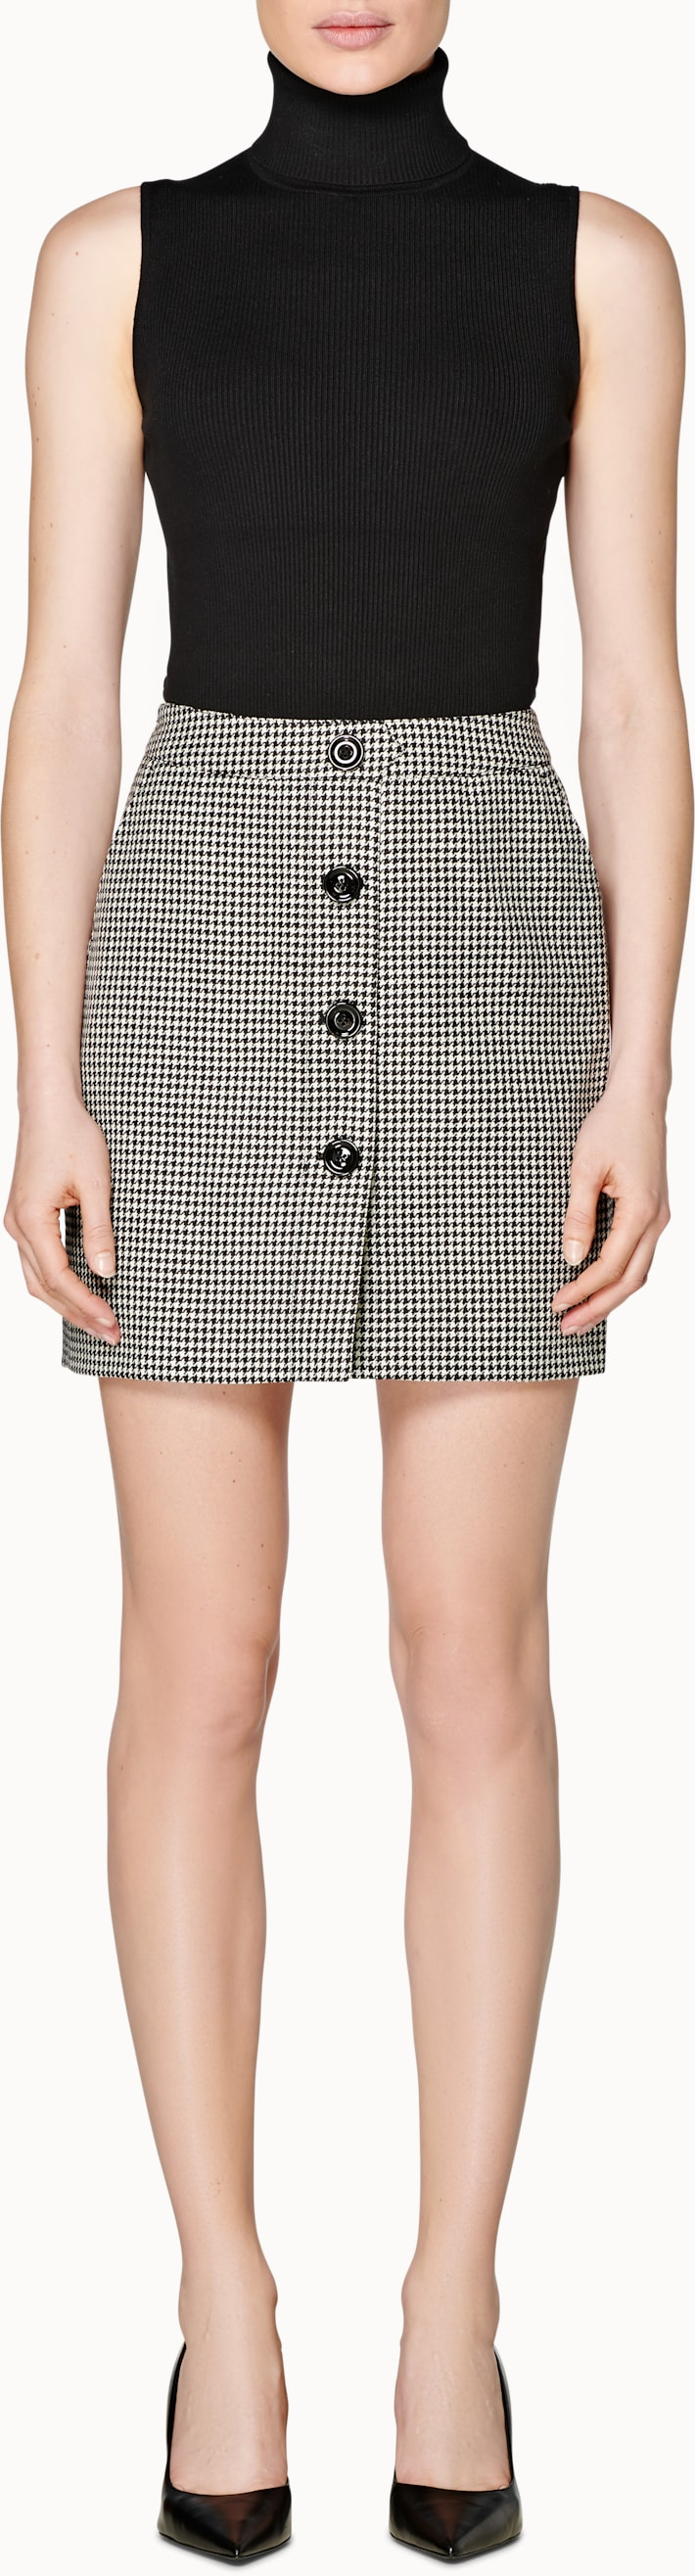 Banu Black Houndstooth Skirt